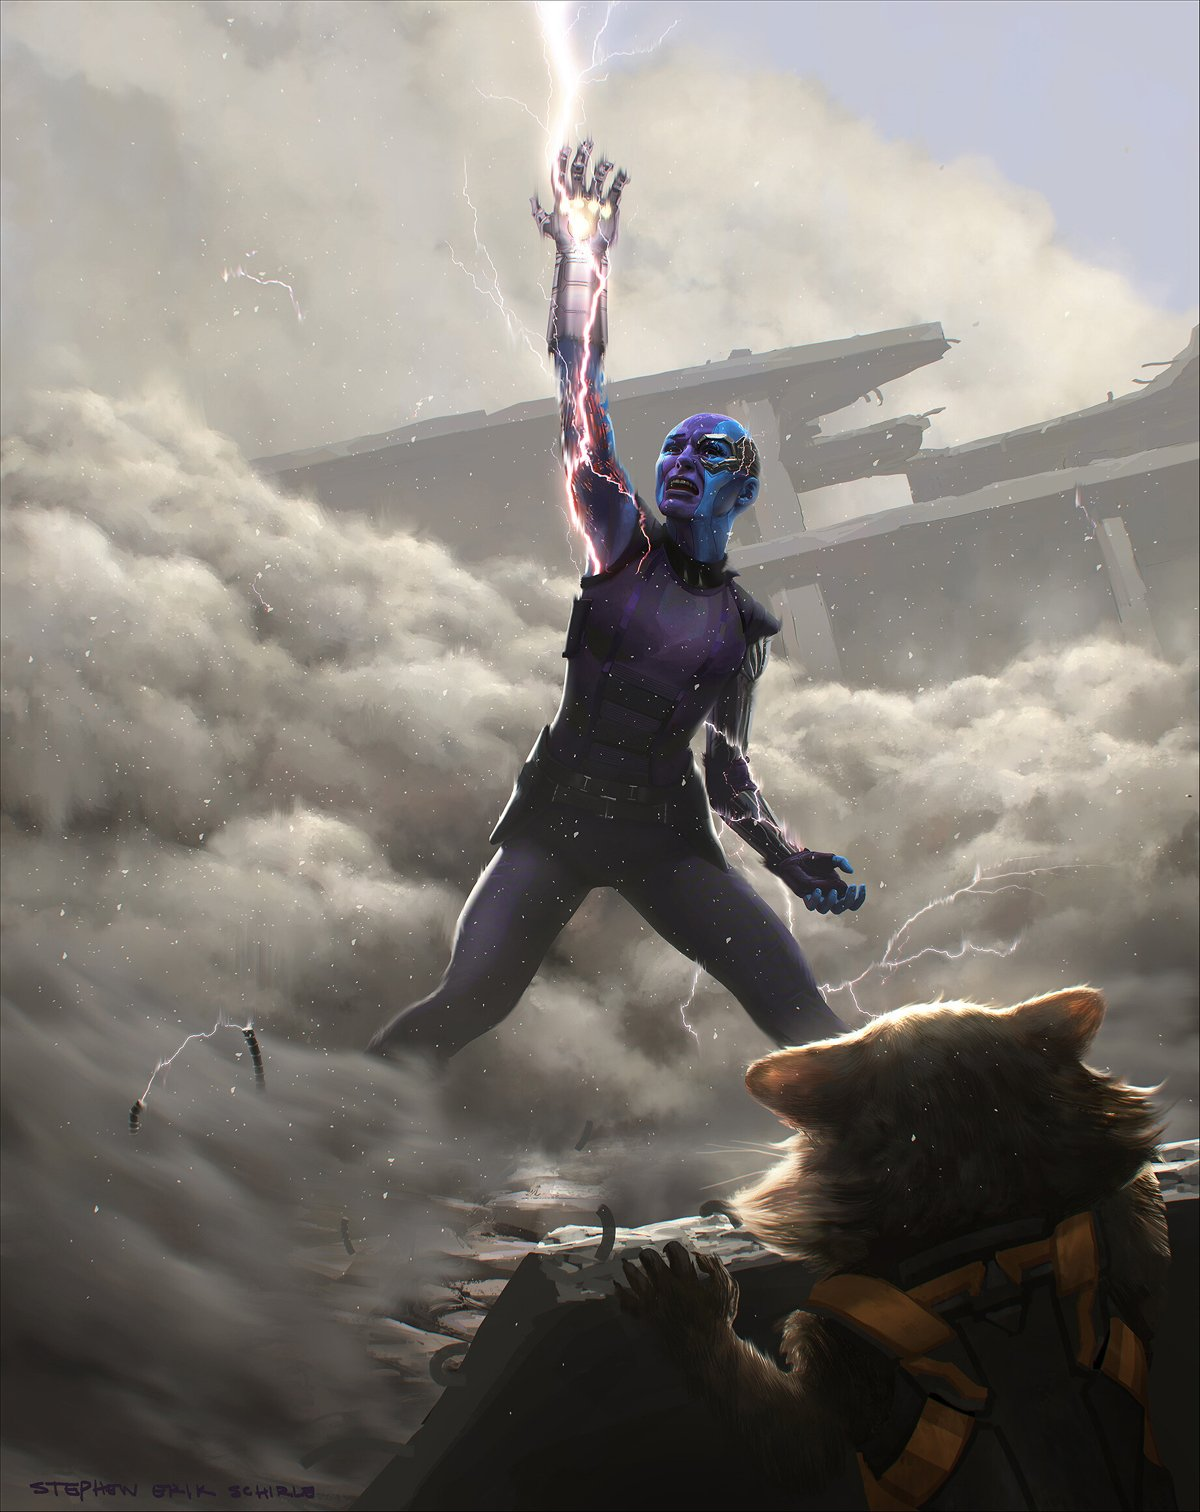 Nebula wears Infinity Gauntlet in Avengers: Endgame concept art by Stephen Schirle